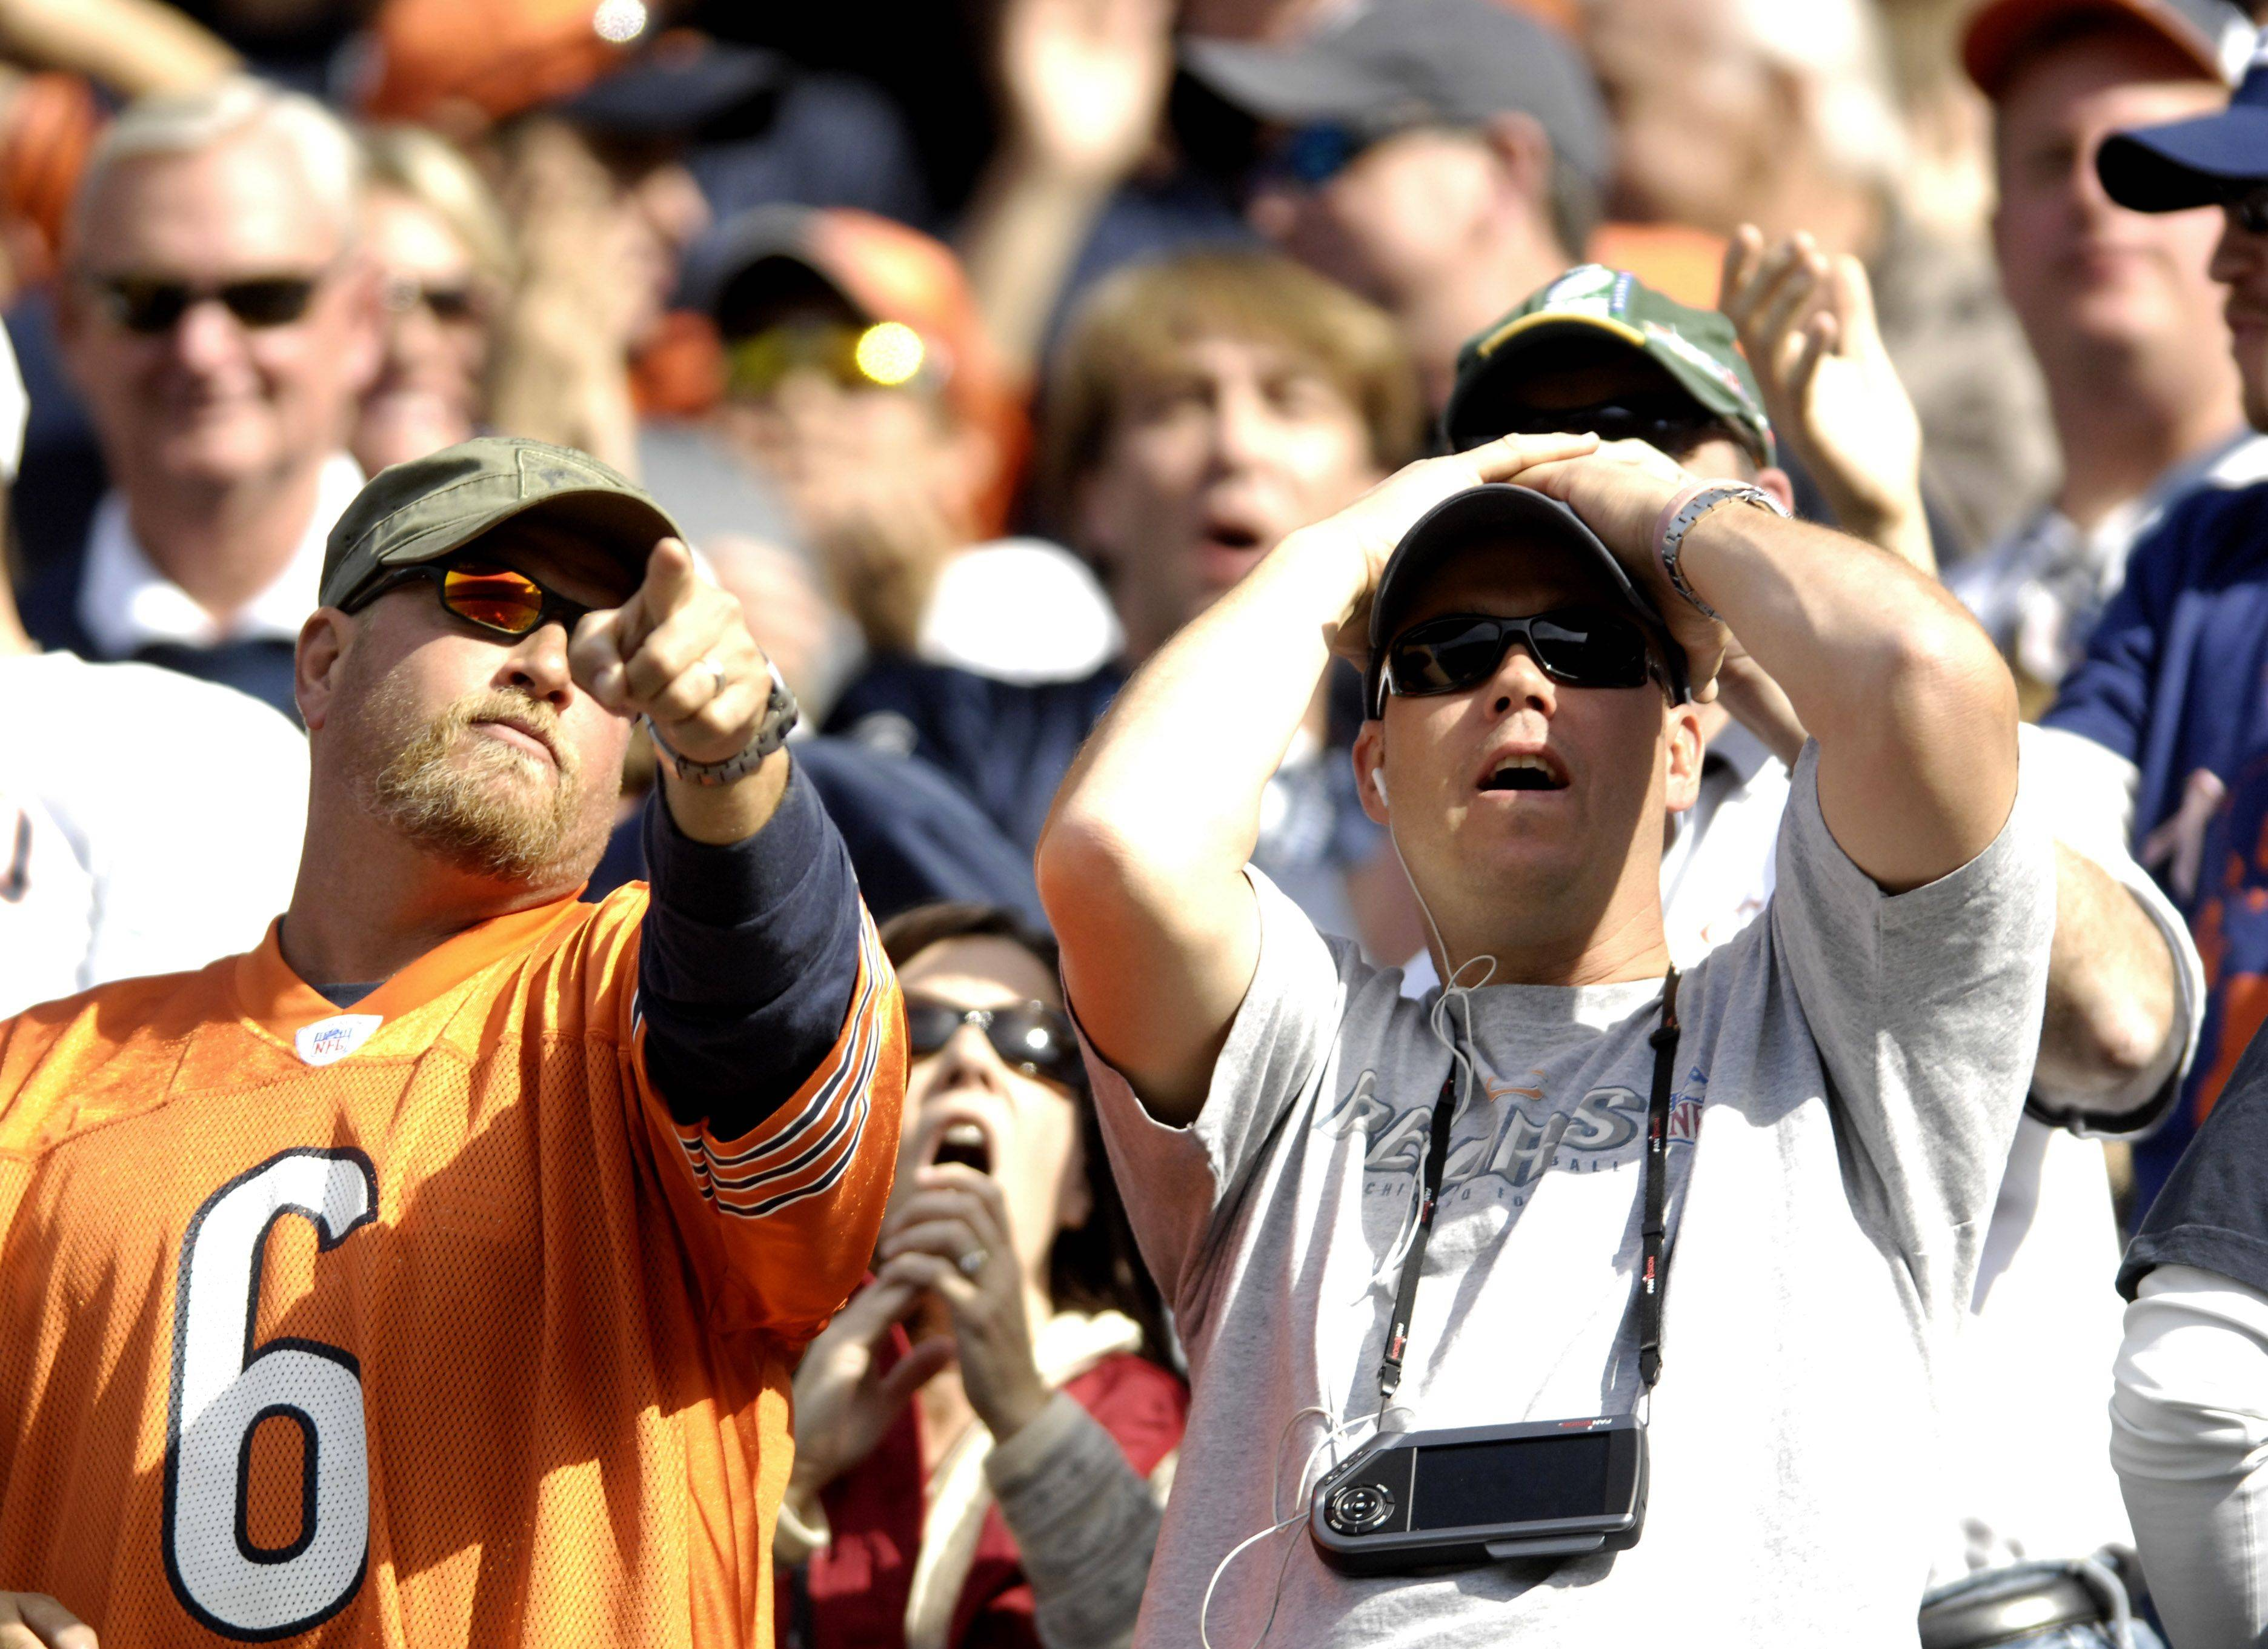 A pair of fans react to seeing a flag on the field after Danieal Manning's kickoff return for a touchdown.